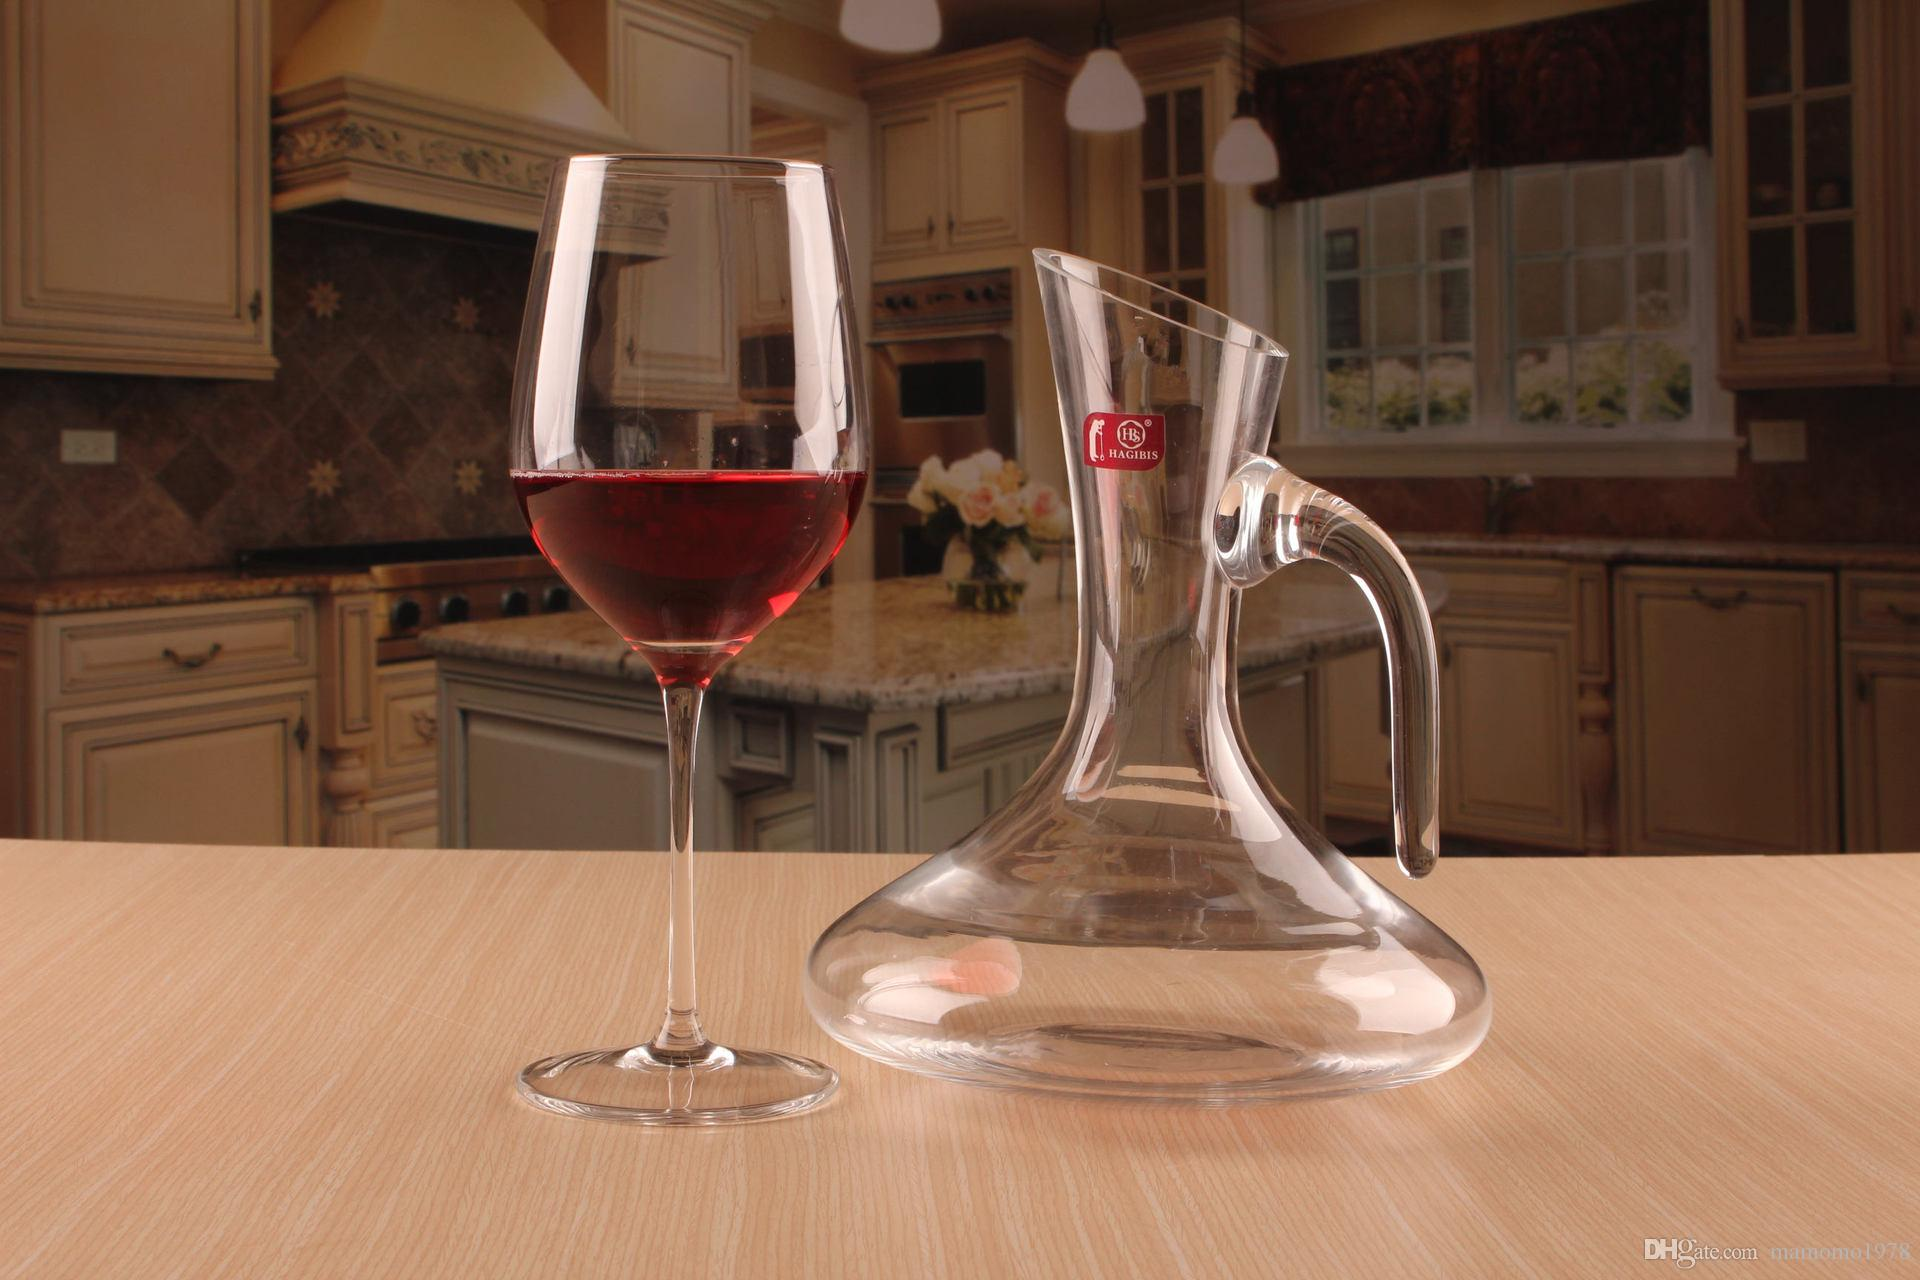 Decanter Wine Glas 1pc 1500ml New Glass Decanter Bevel Spout Wine Decanter Wine Aerator Container Dispenser Carafe Bottle Jug Wine Pourers J1112